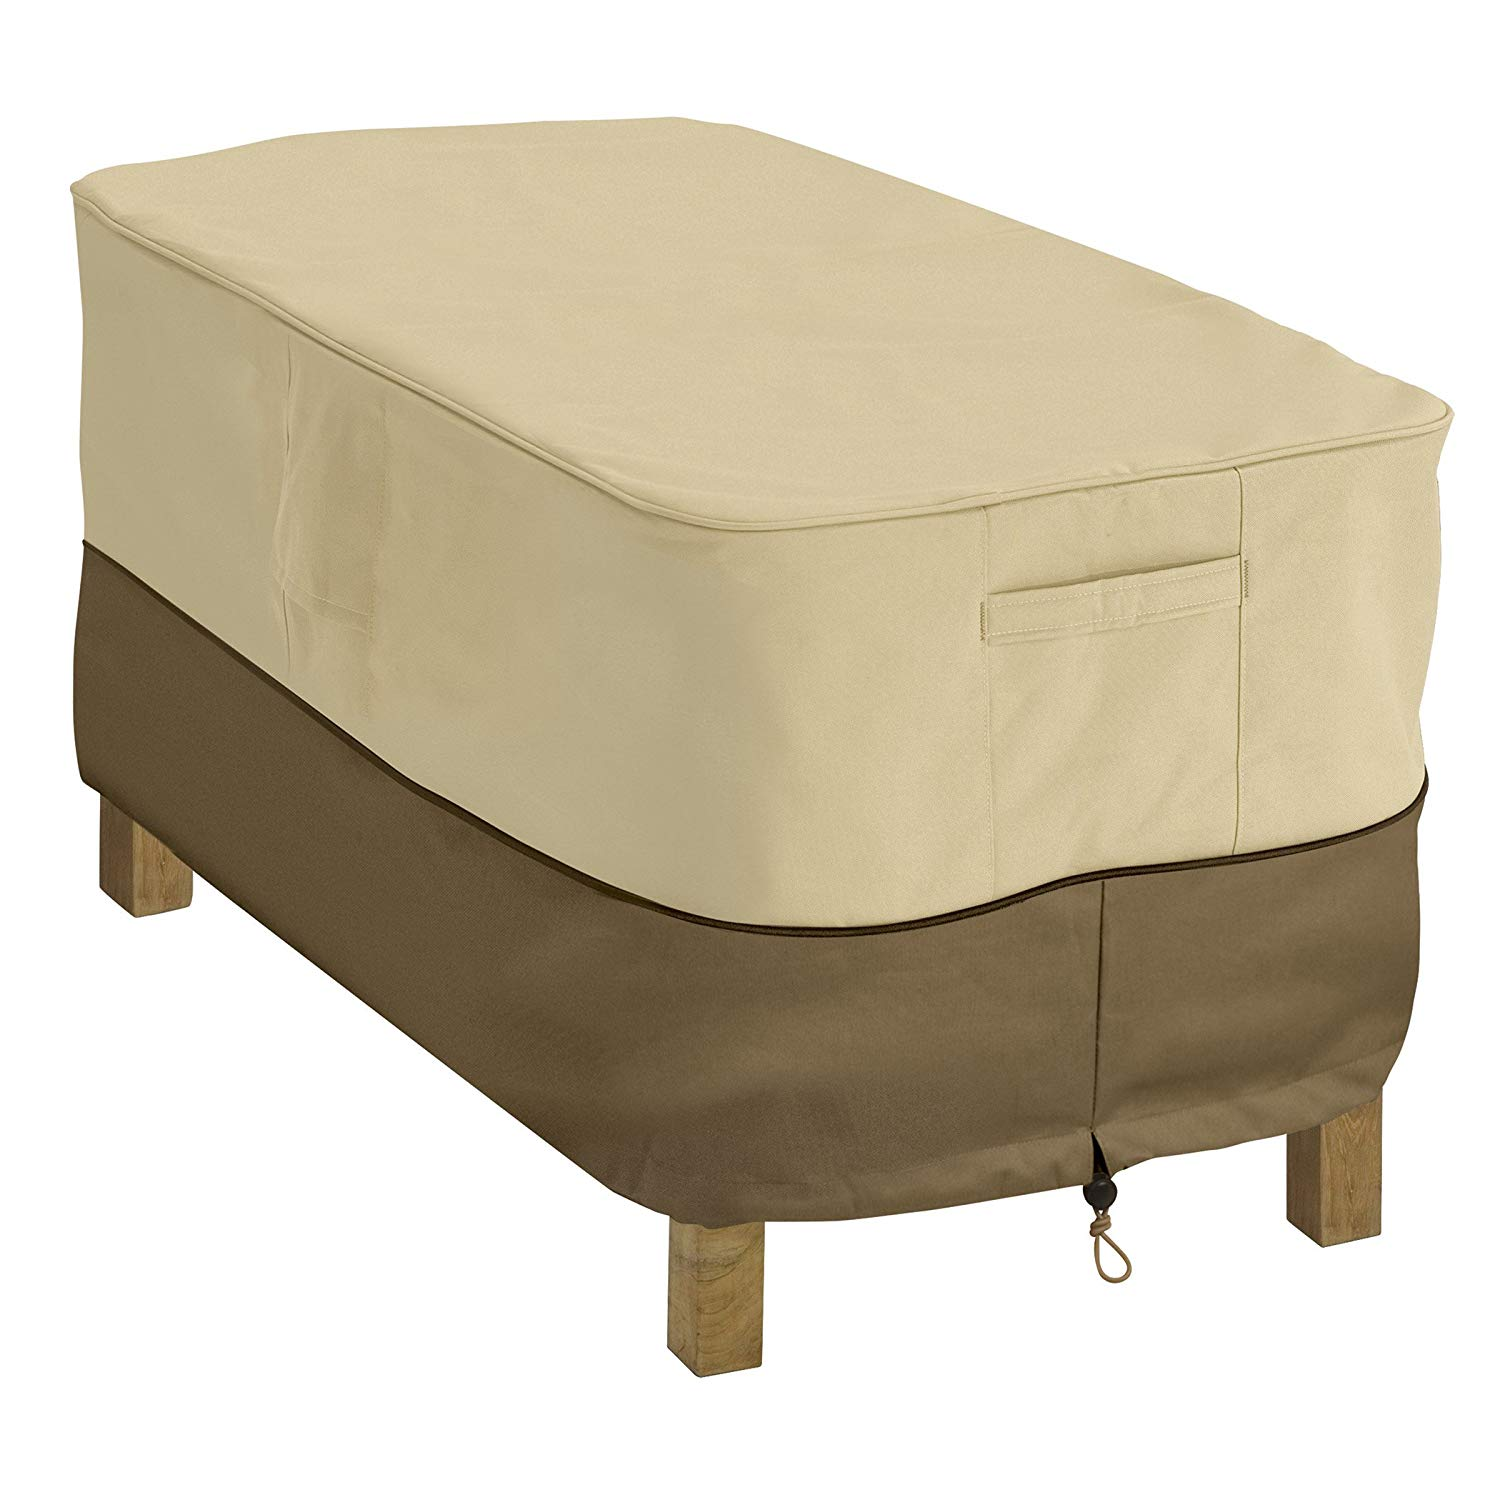 outdoor furniture covers amazon.com : classic accessories veranda patio coffee table cover - durable BWQFTYR